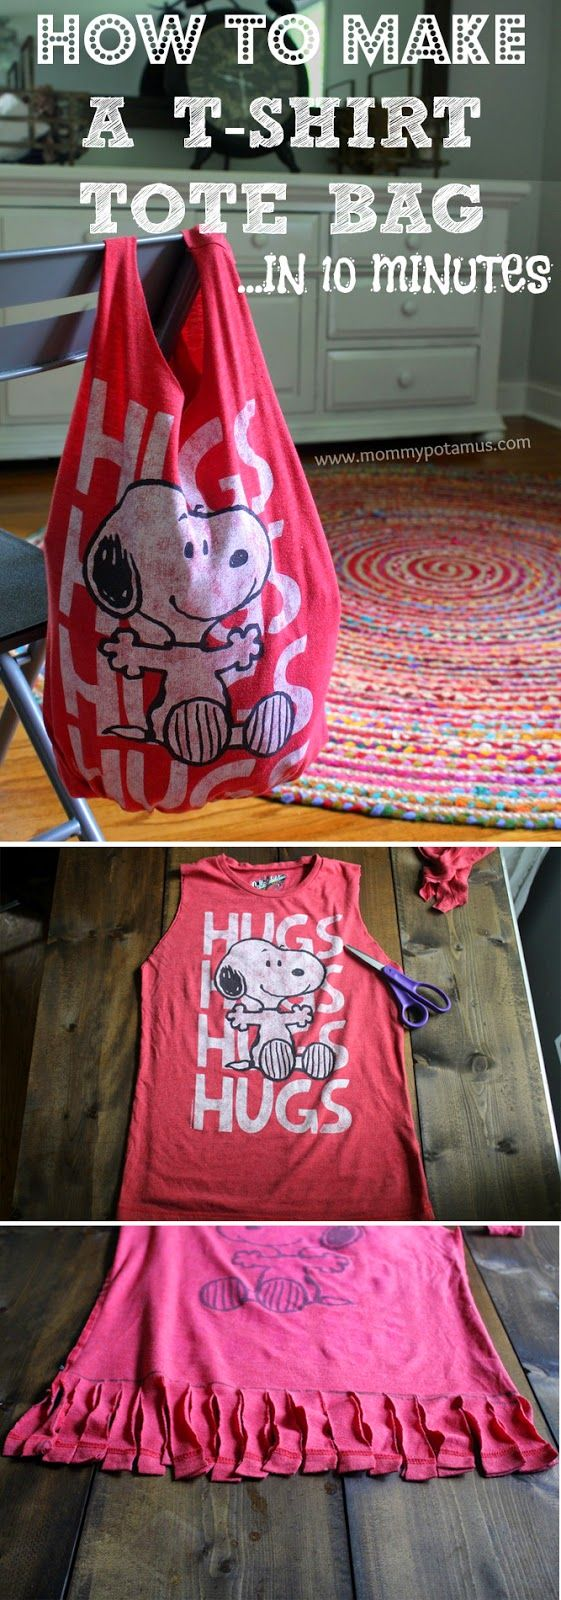 16 Upcycled and Refashioned TShirt DIY Tutorials.... From Tote Bags to Cat…